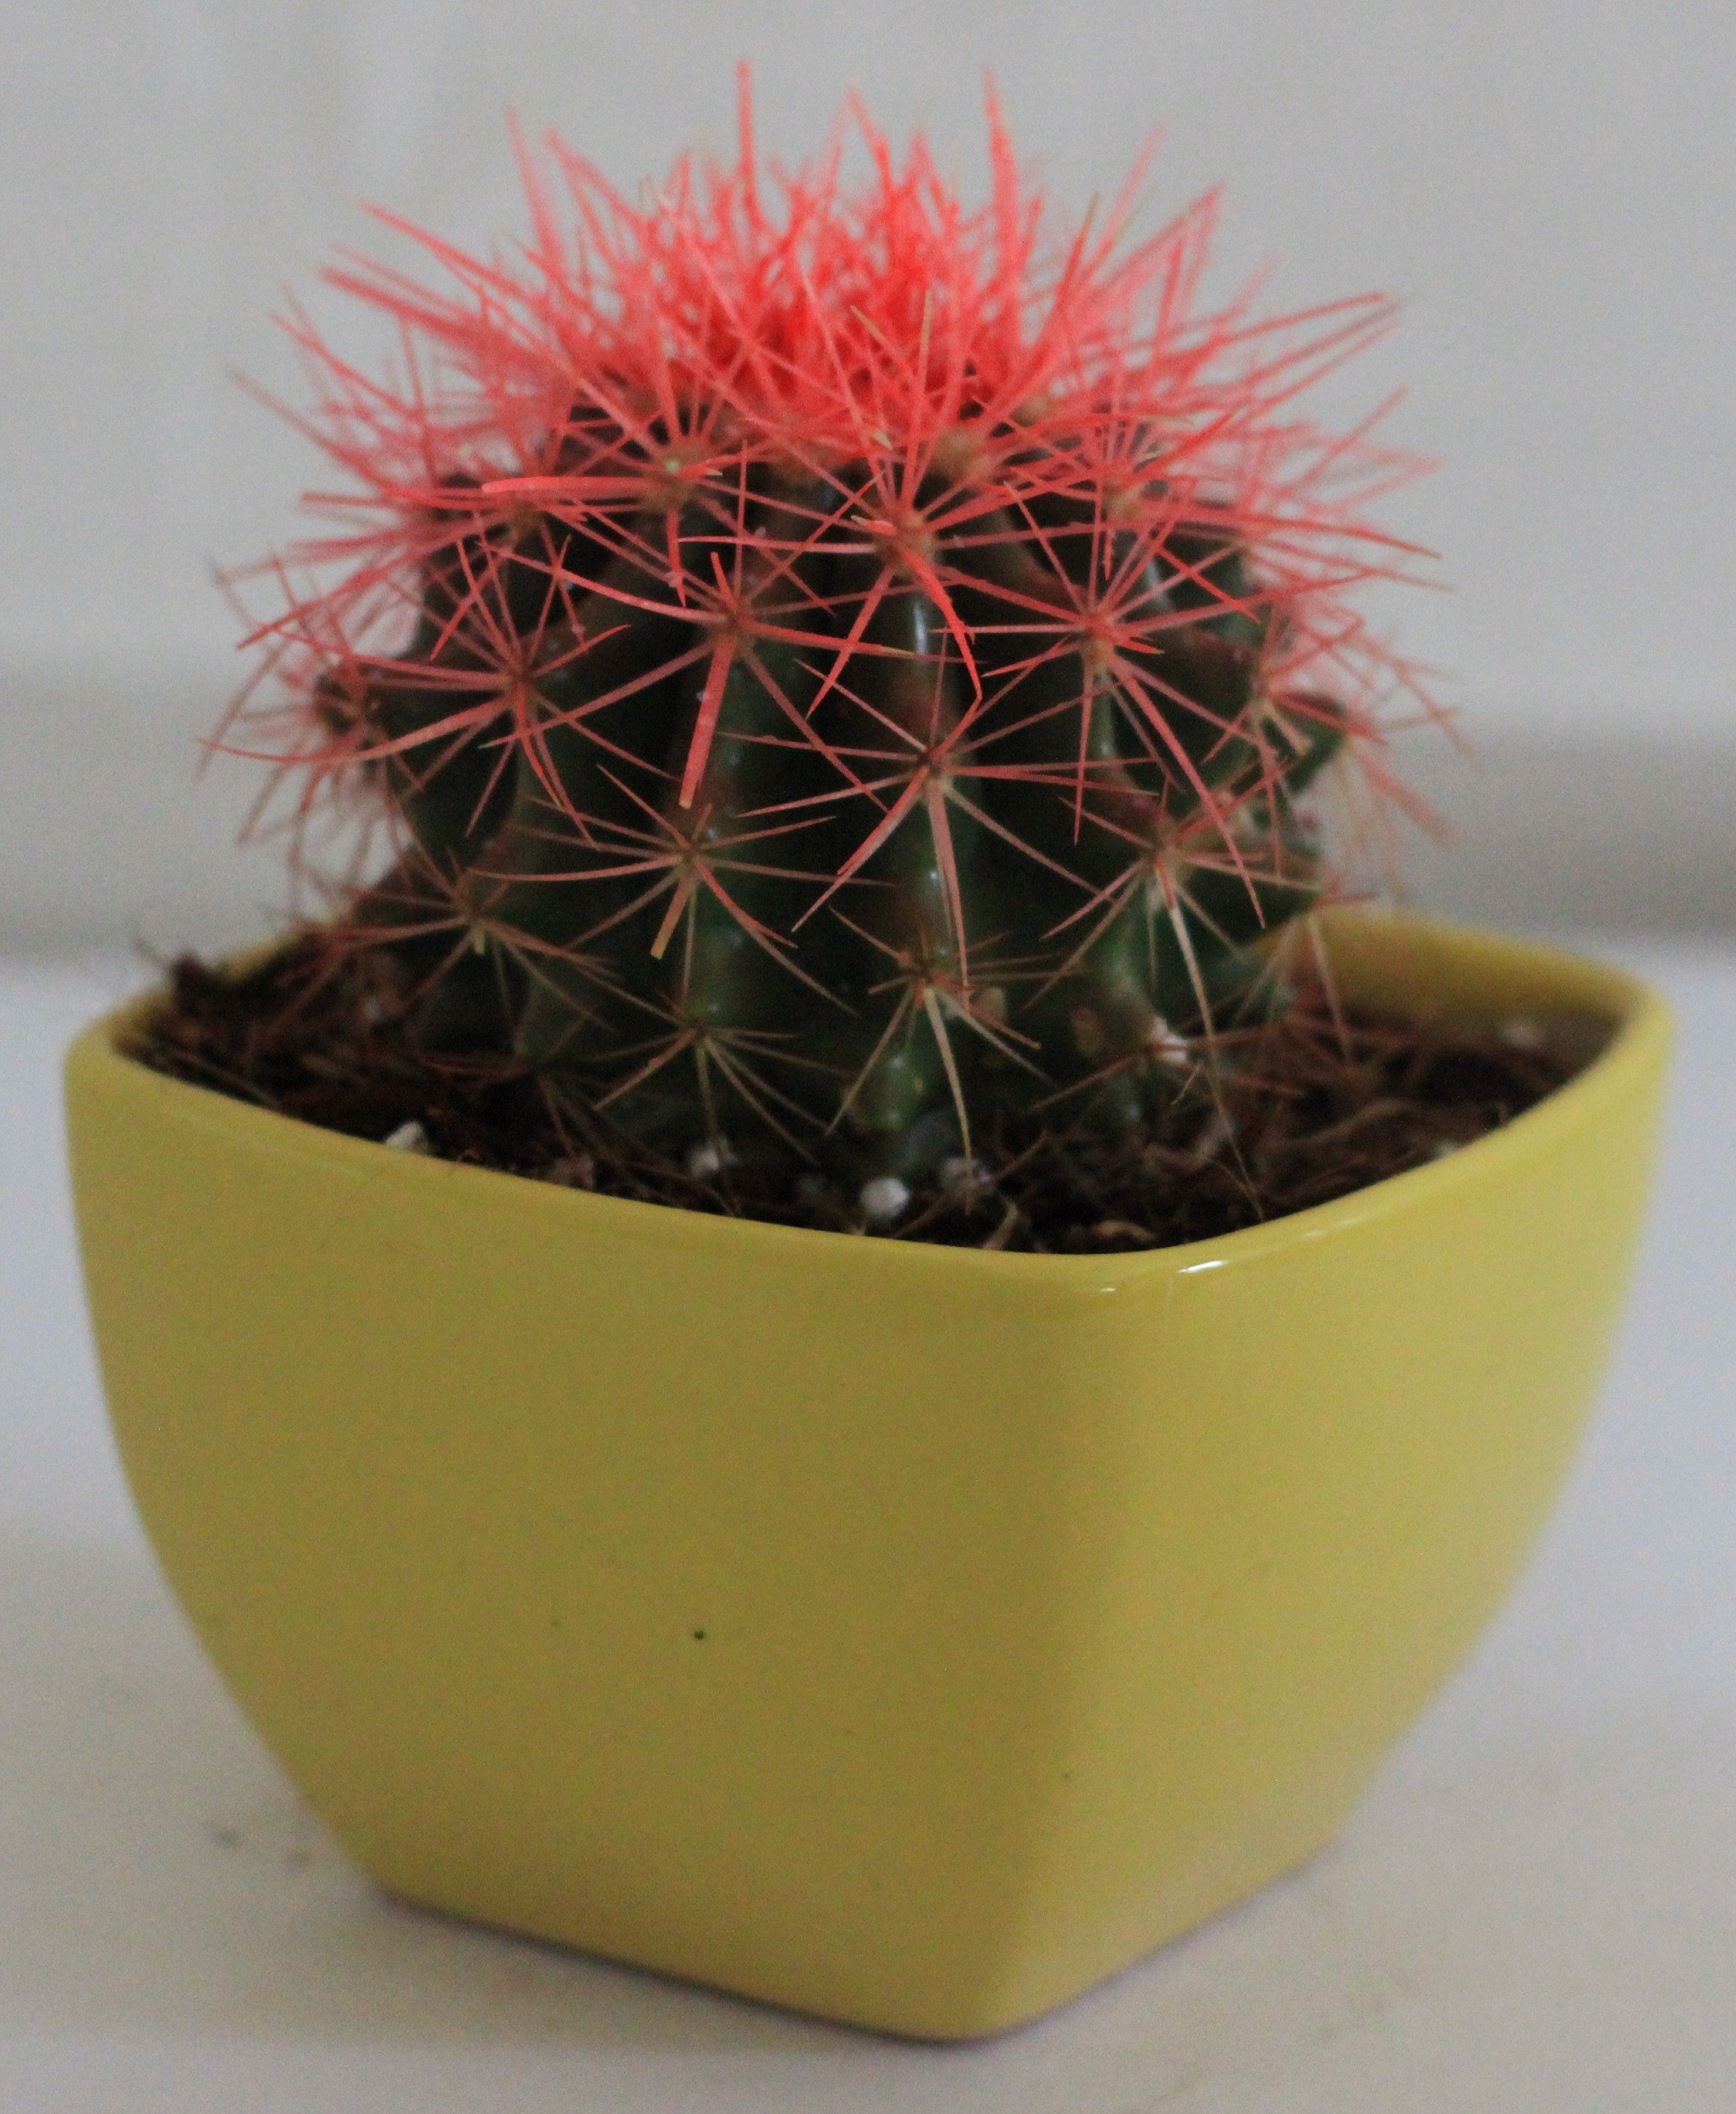 Buy Echinocactus grusonii Painted Non-Grafted Pink-Orange Cactus ...